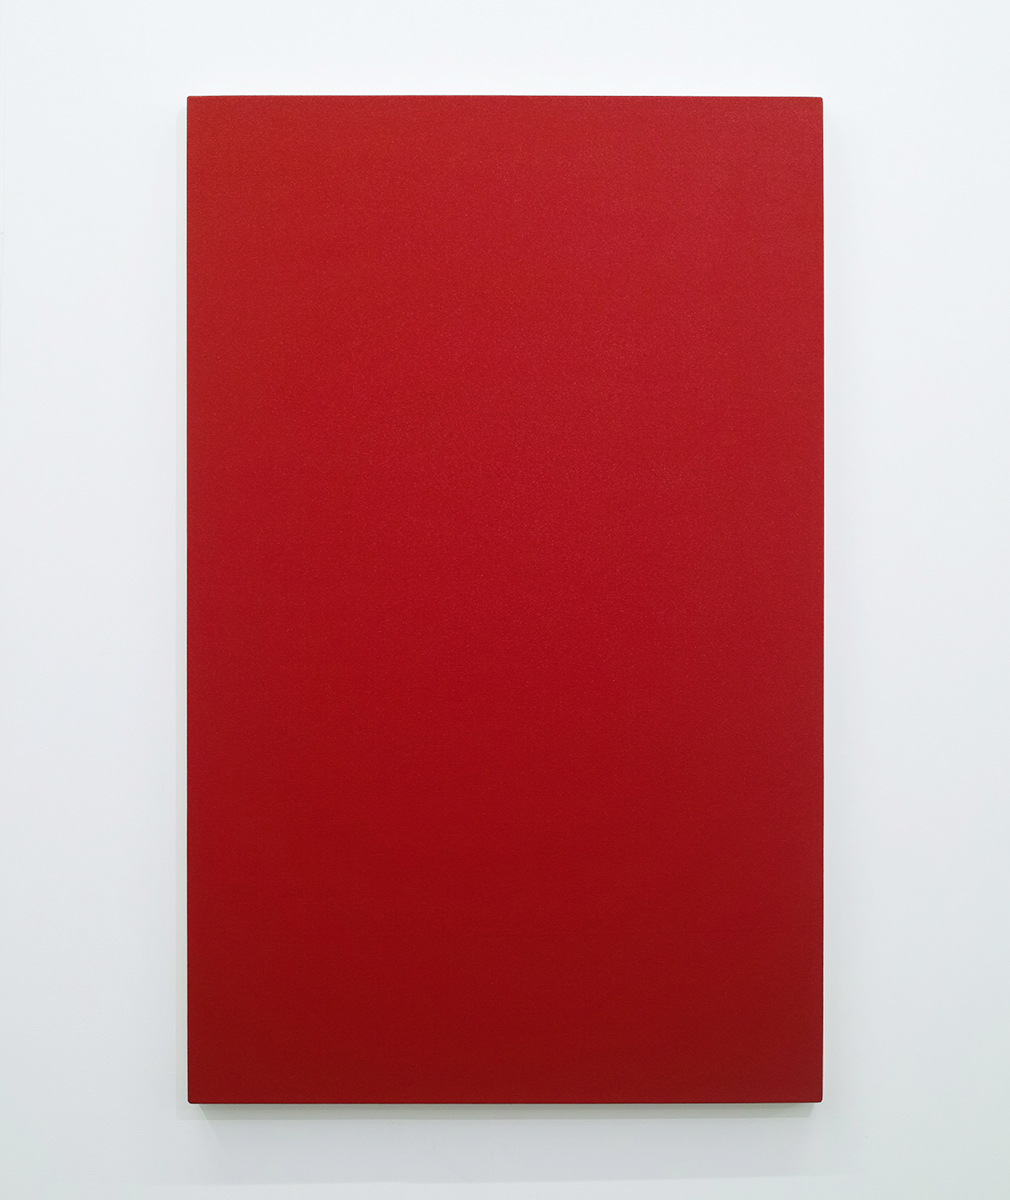 Text No. 582 (untitled red)<br>acrylic, ink on canvas,  1310 x 805 x 45 mm,  2006